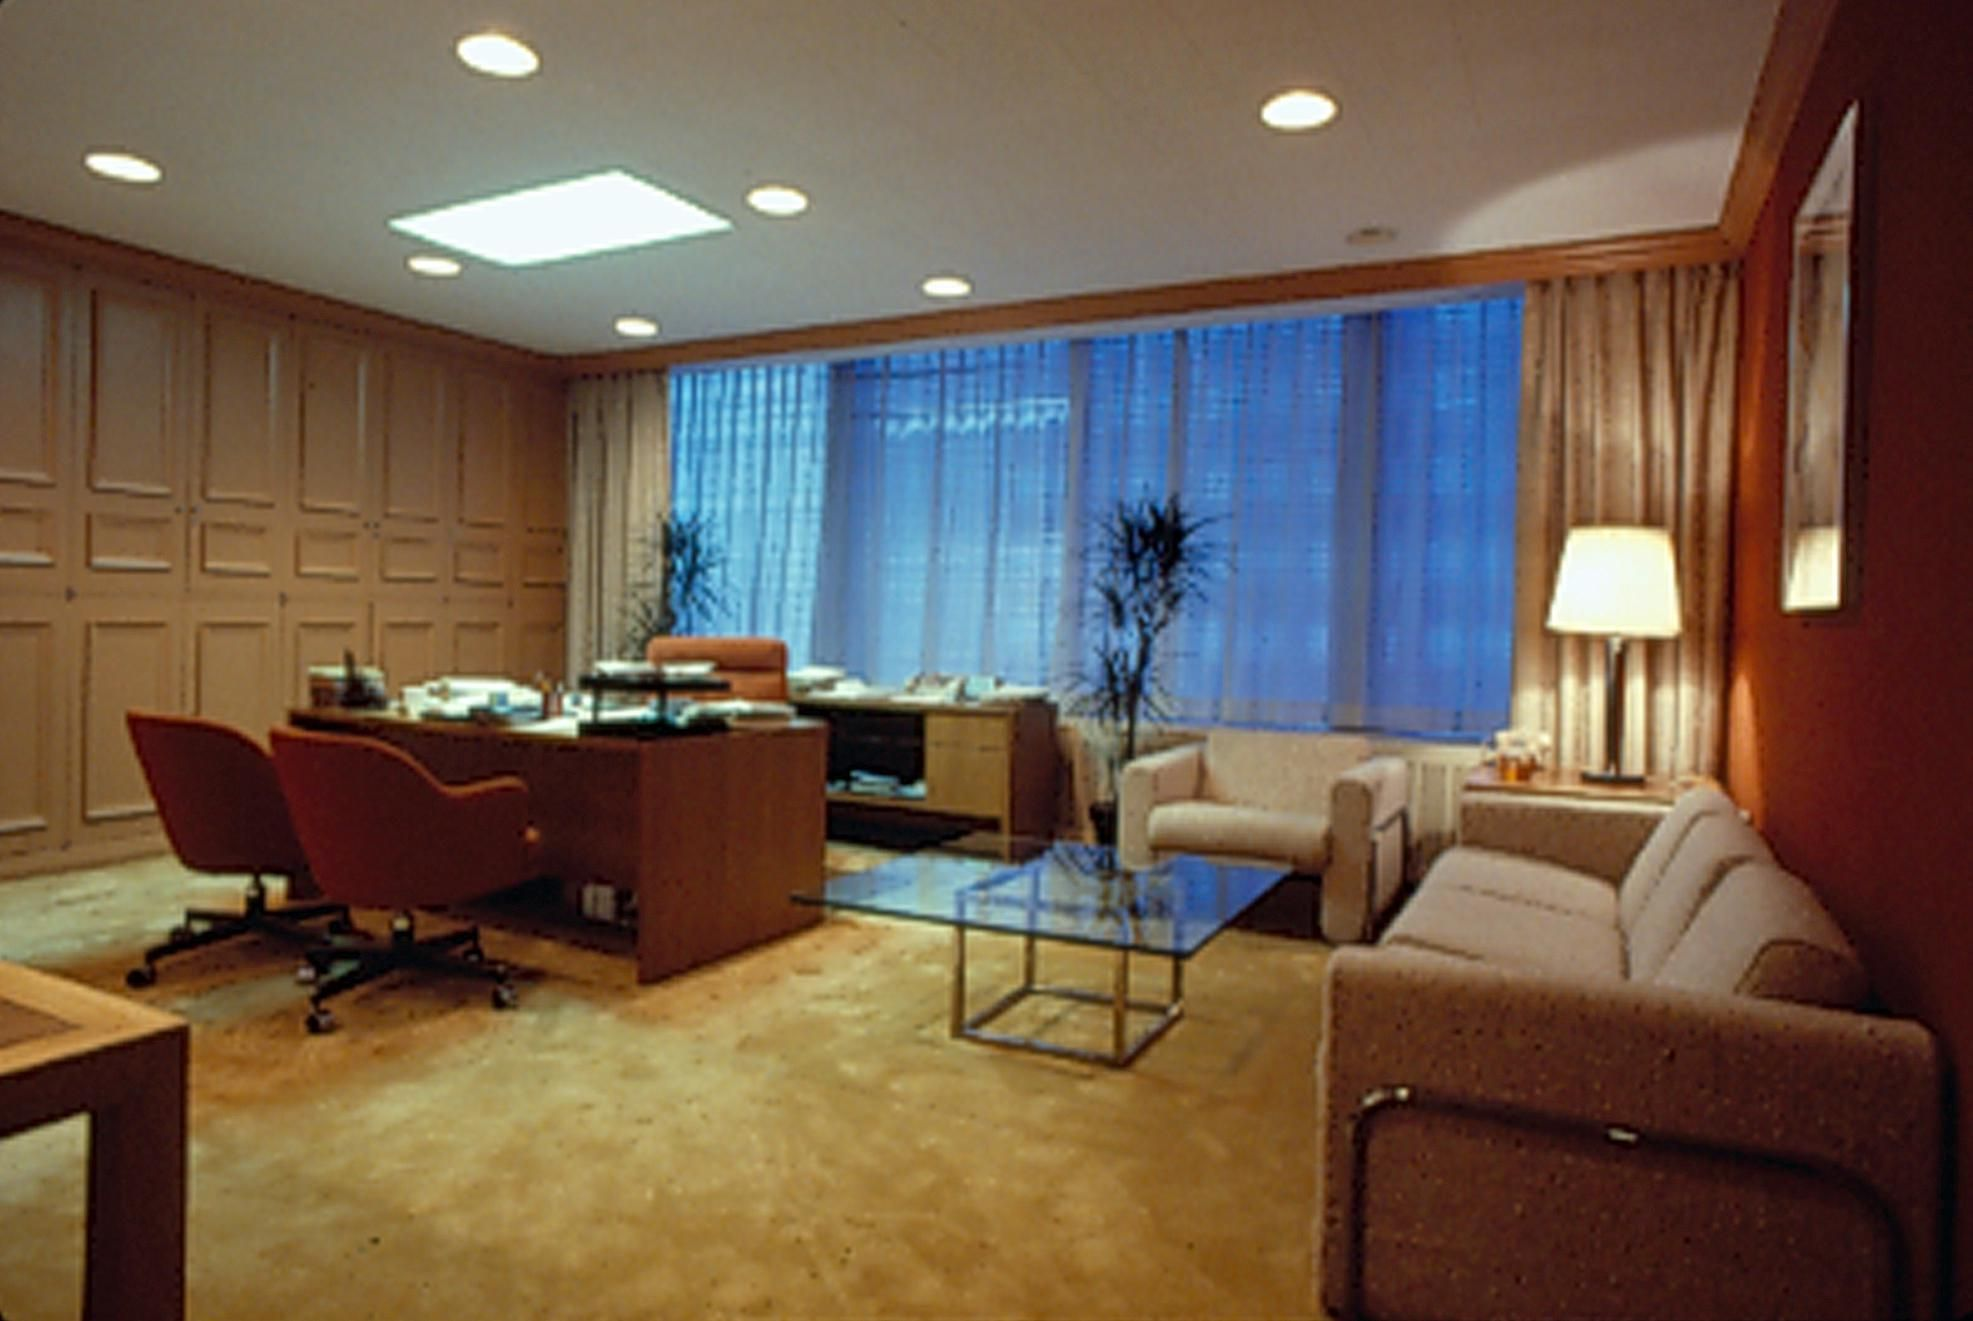 Vp executive office this office uses furniture carpeting for Small executive office design